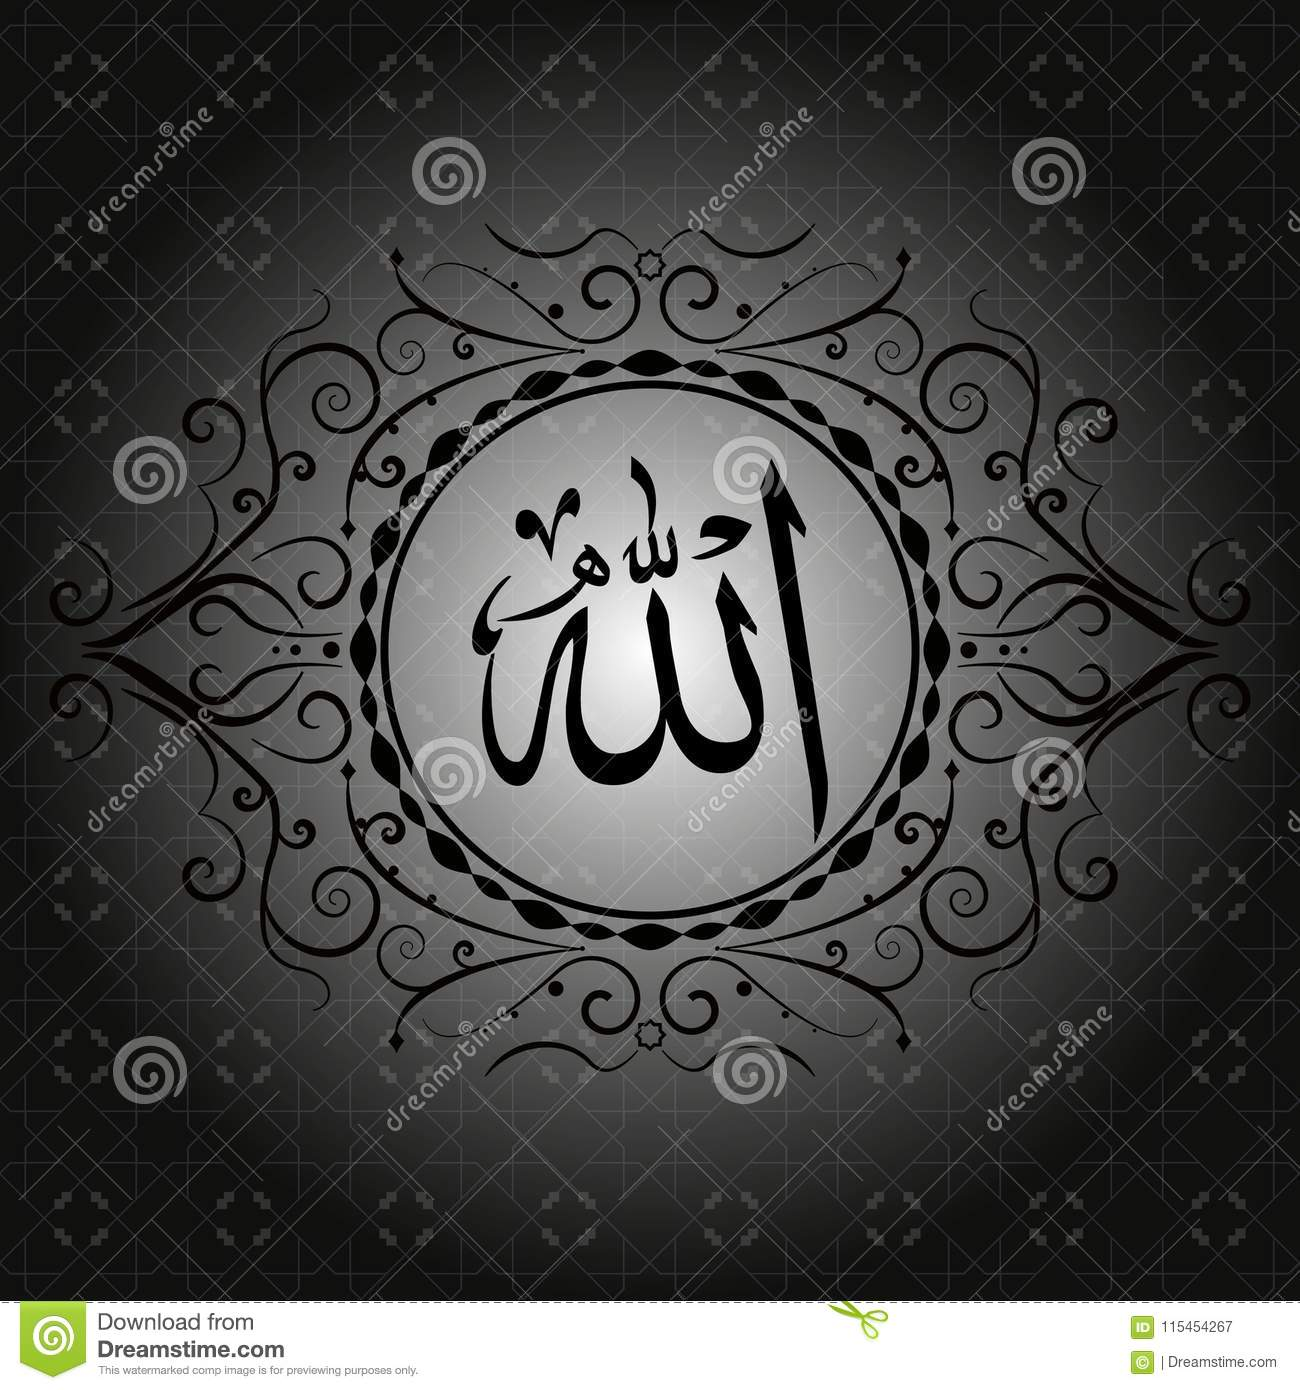 Allah Arabic Typography Translation In The Name Of God Stock